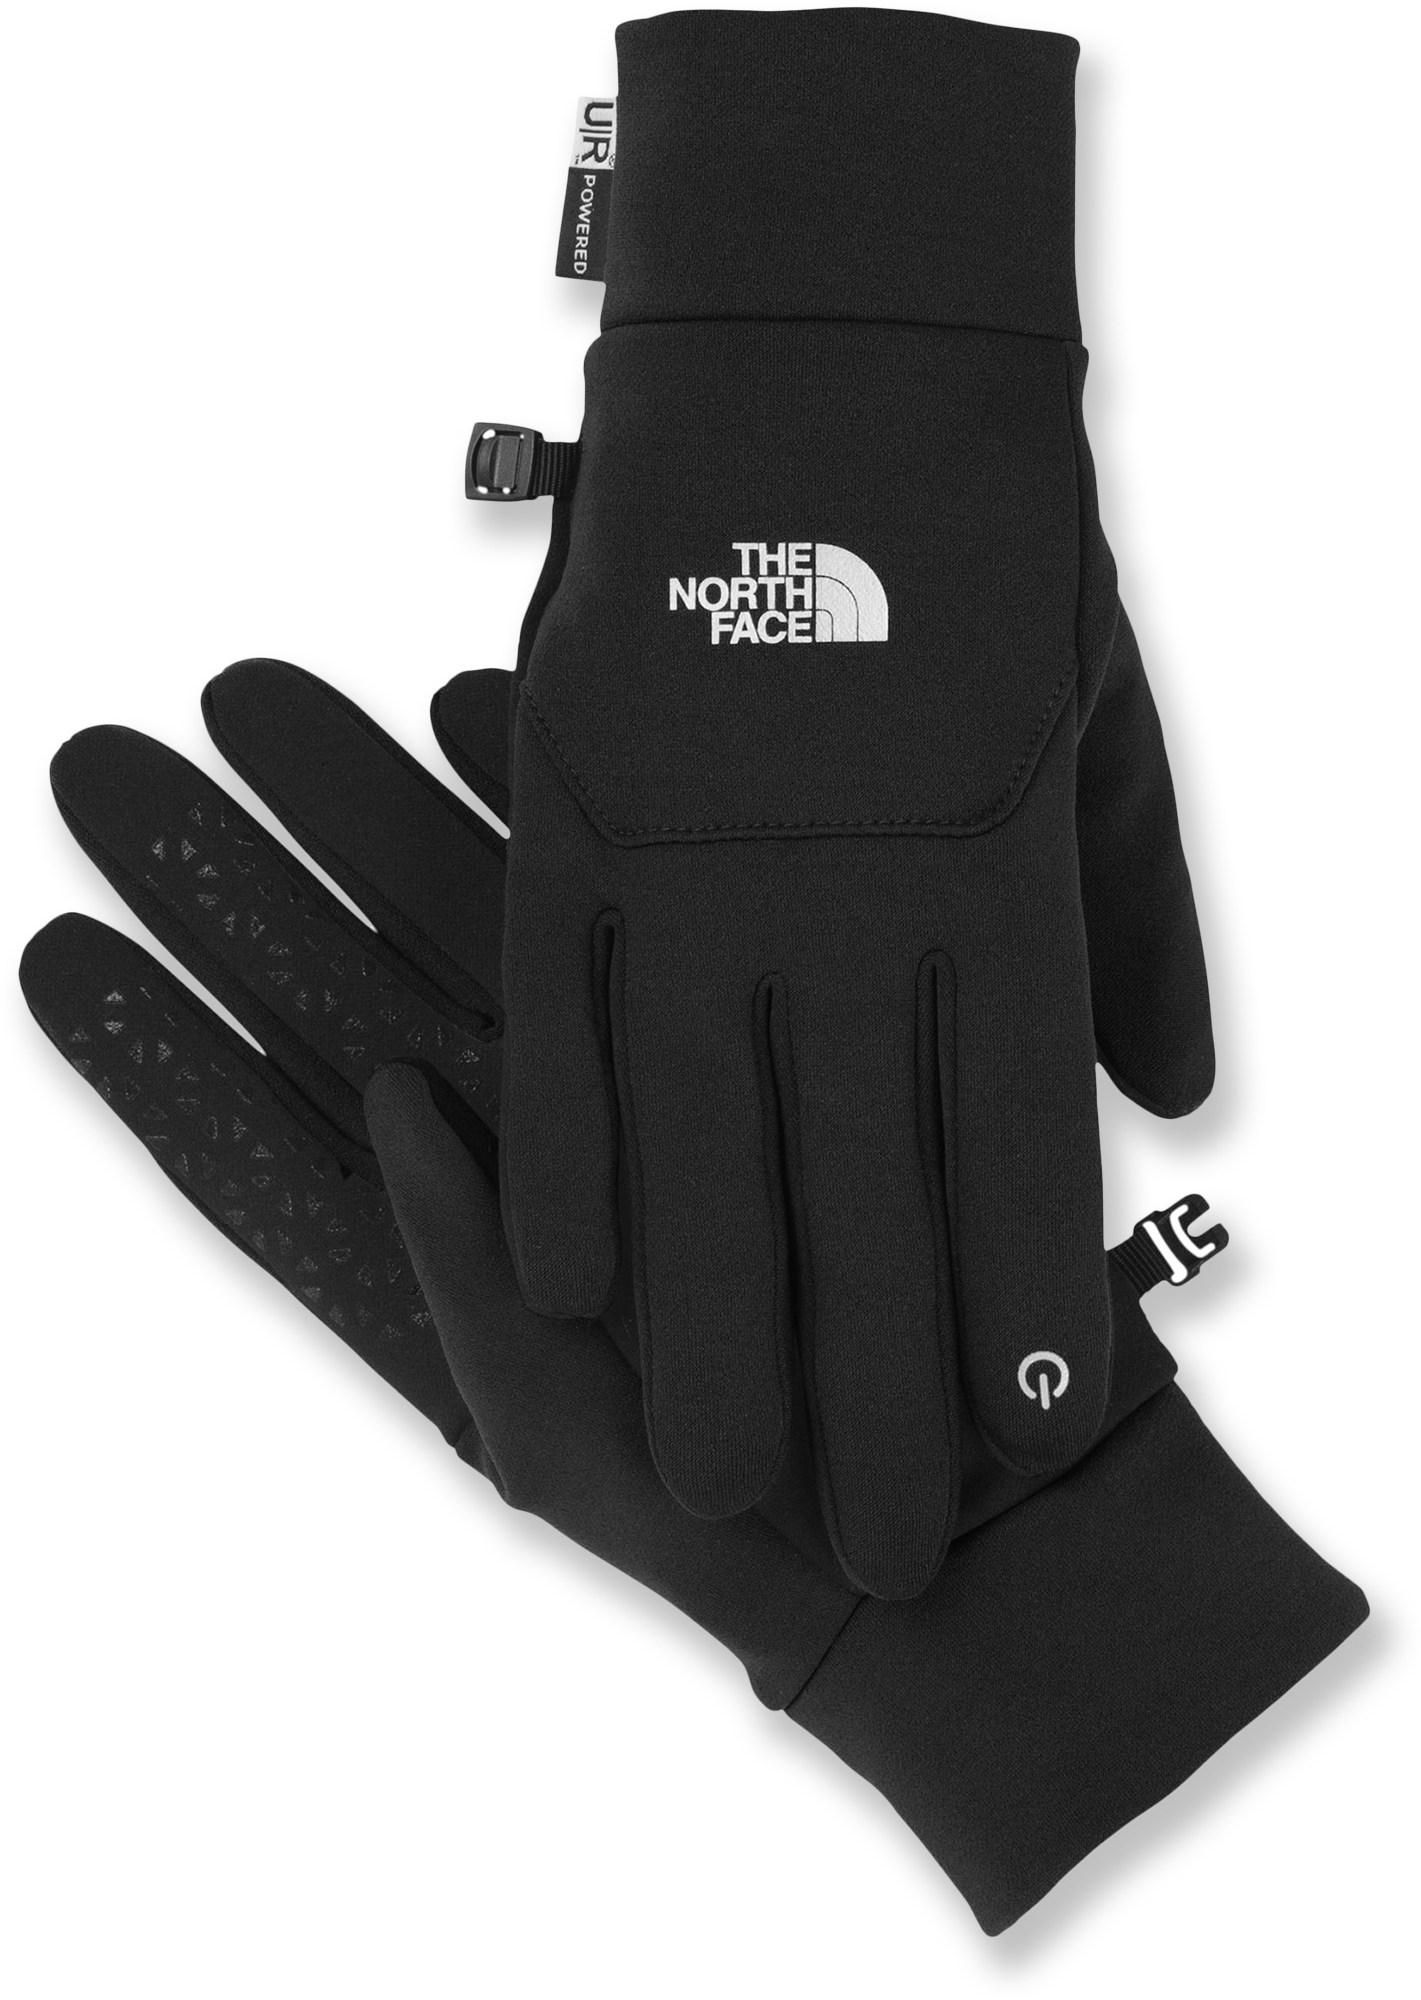 d461ef255 Keep in touch even when it's cold - The North Face Etip Gloves ...